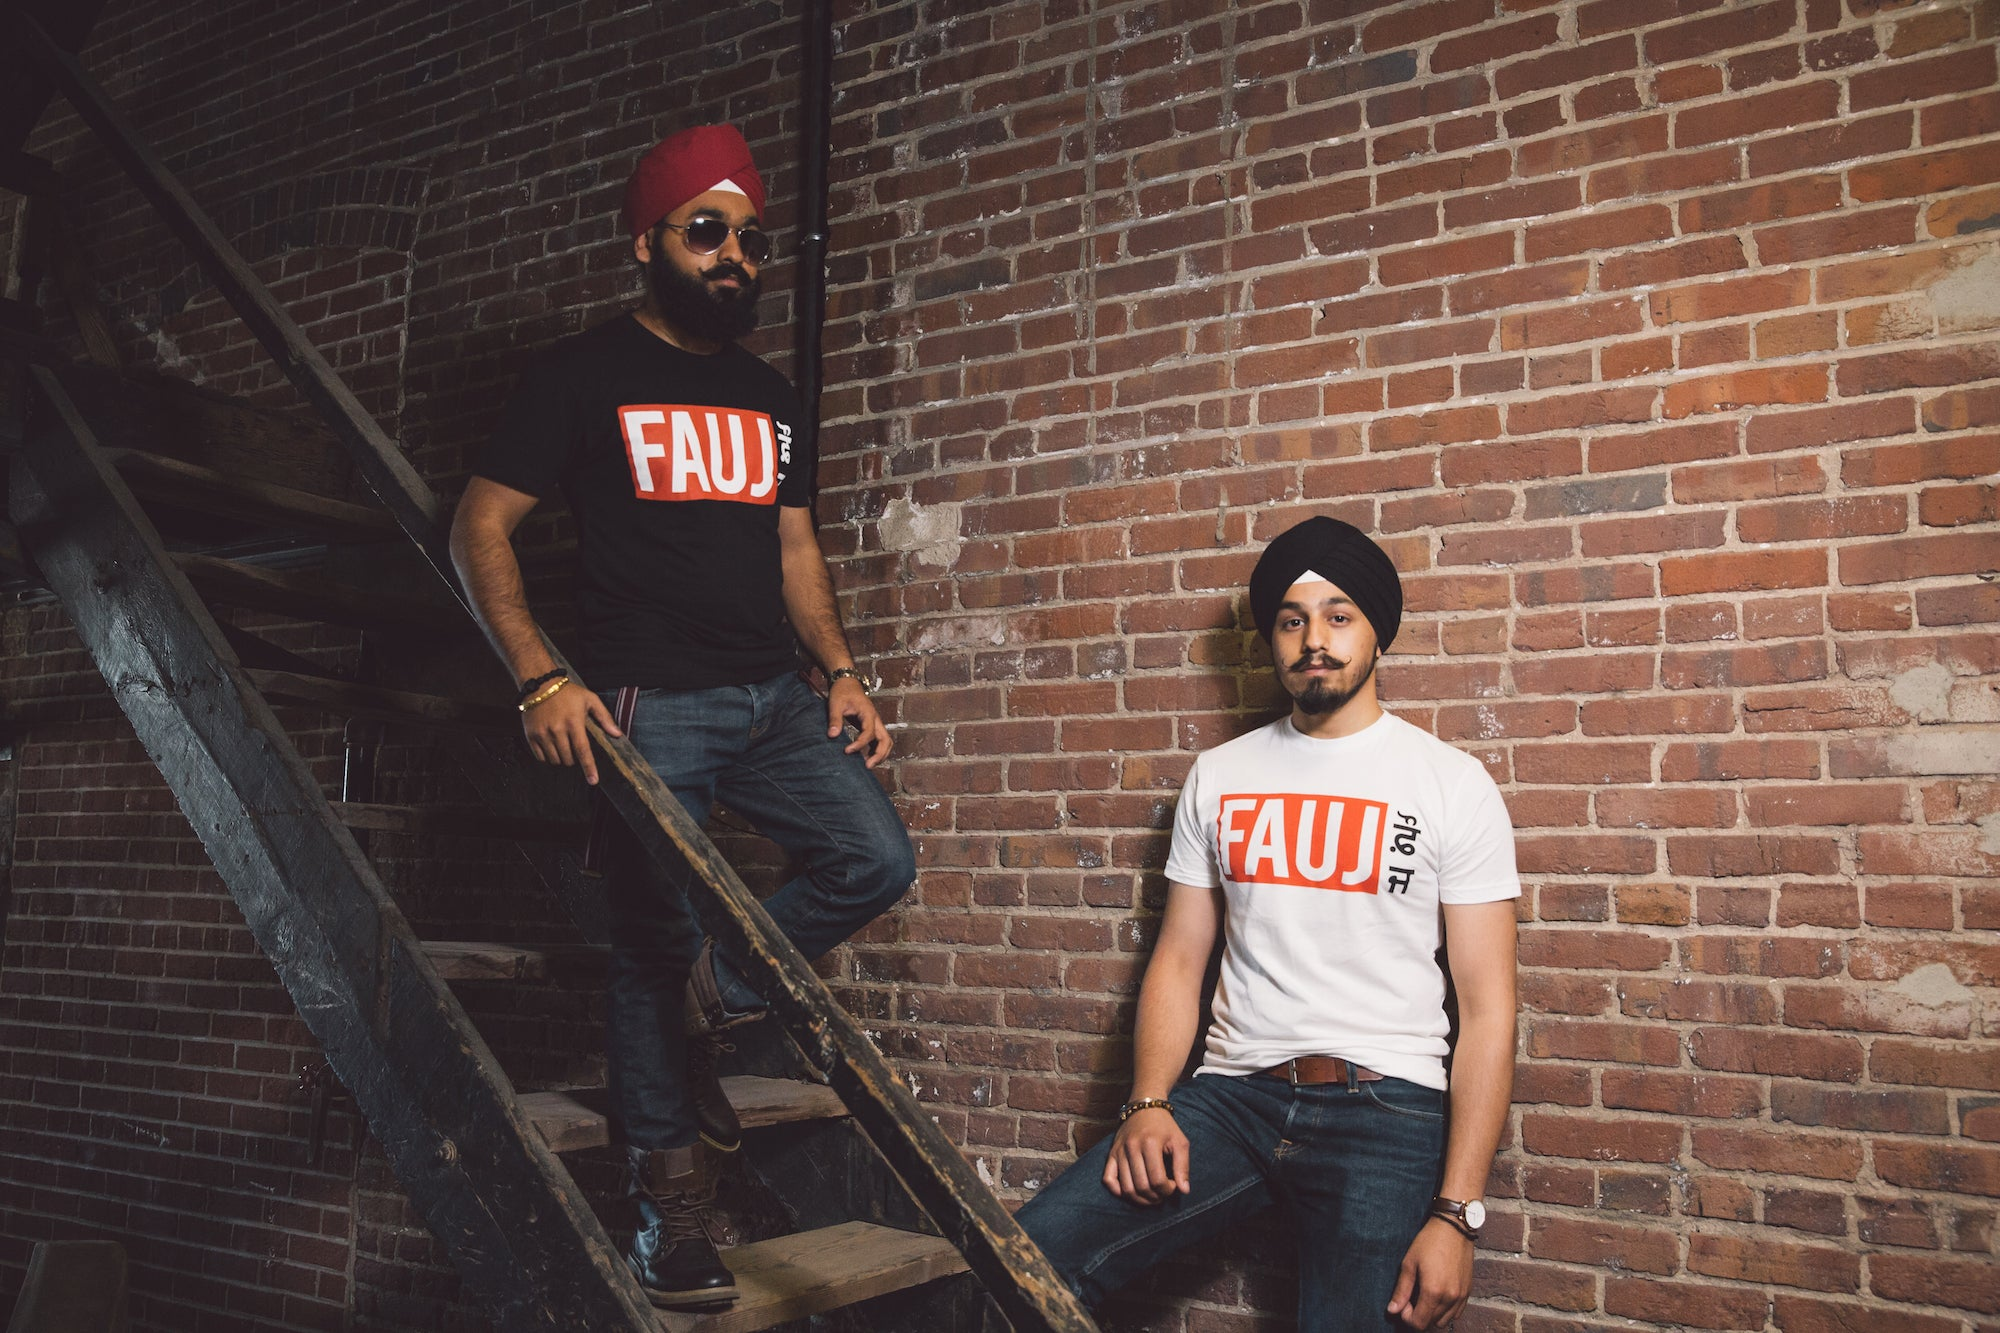 FAUJ by Rootsgear